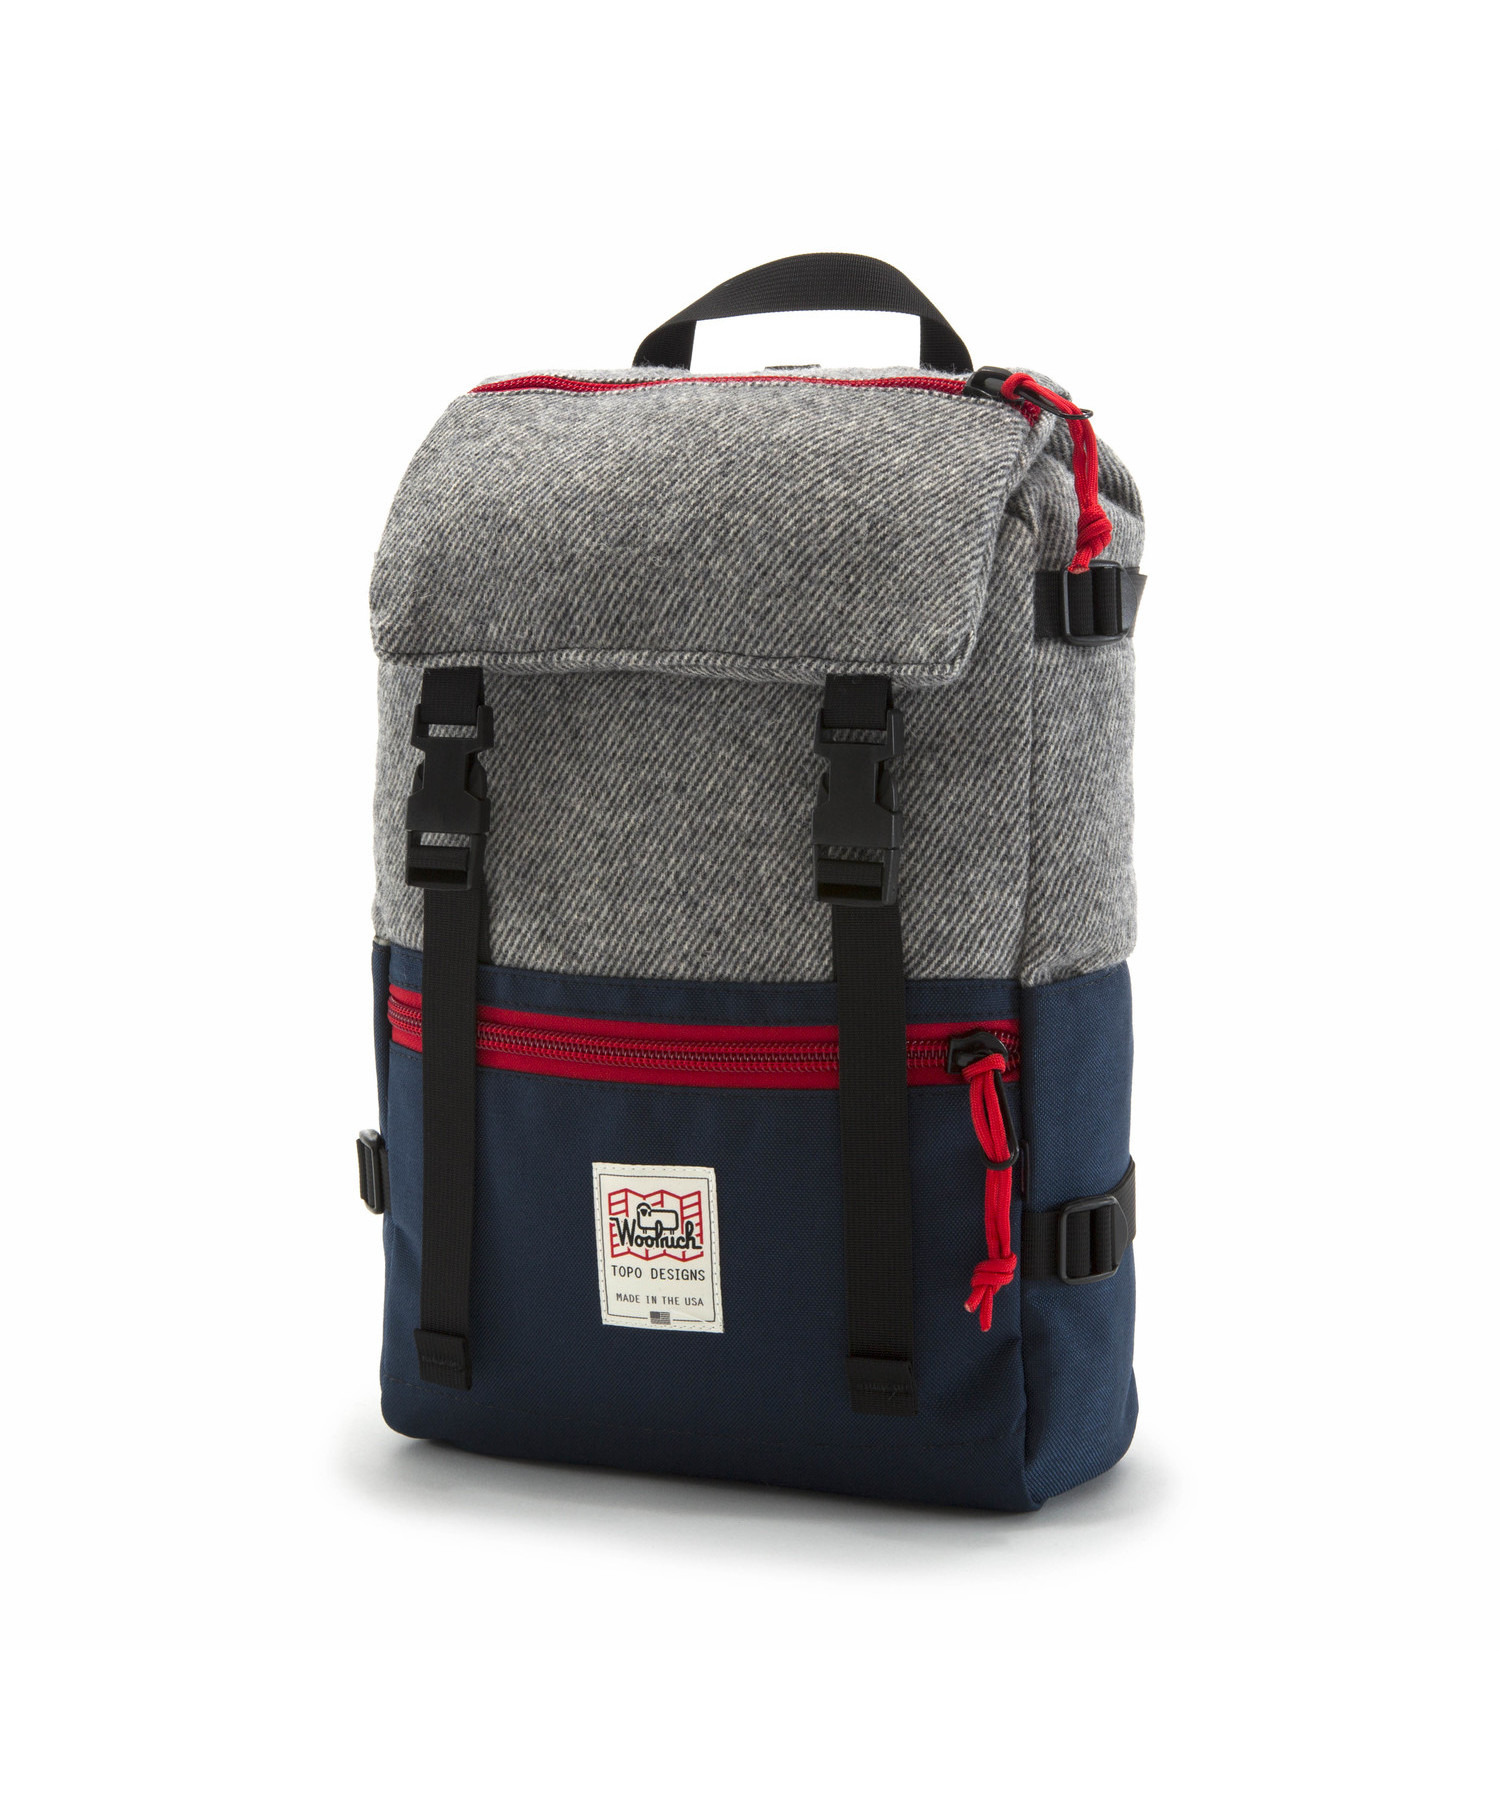 Rover Pack | Topo Designs & Woolrich